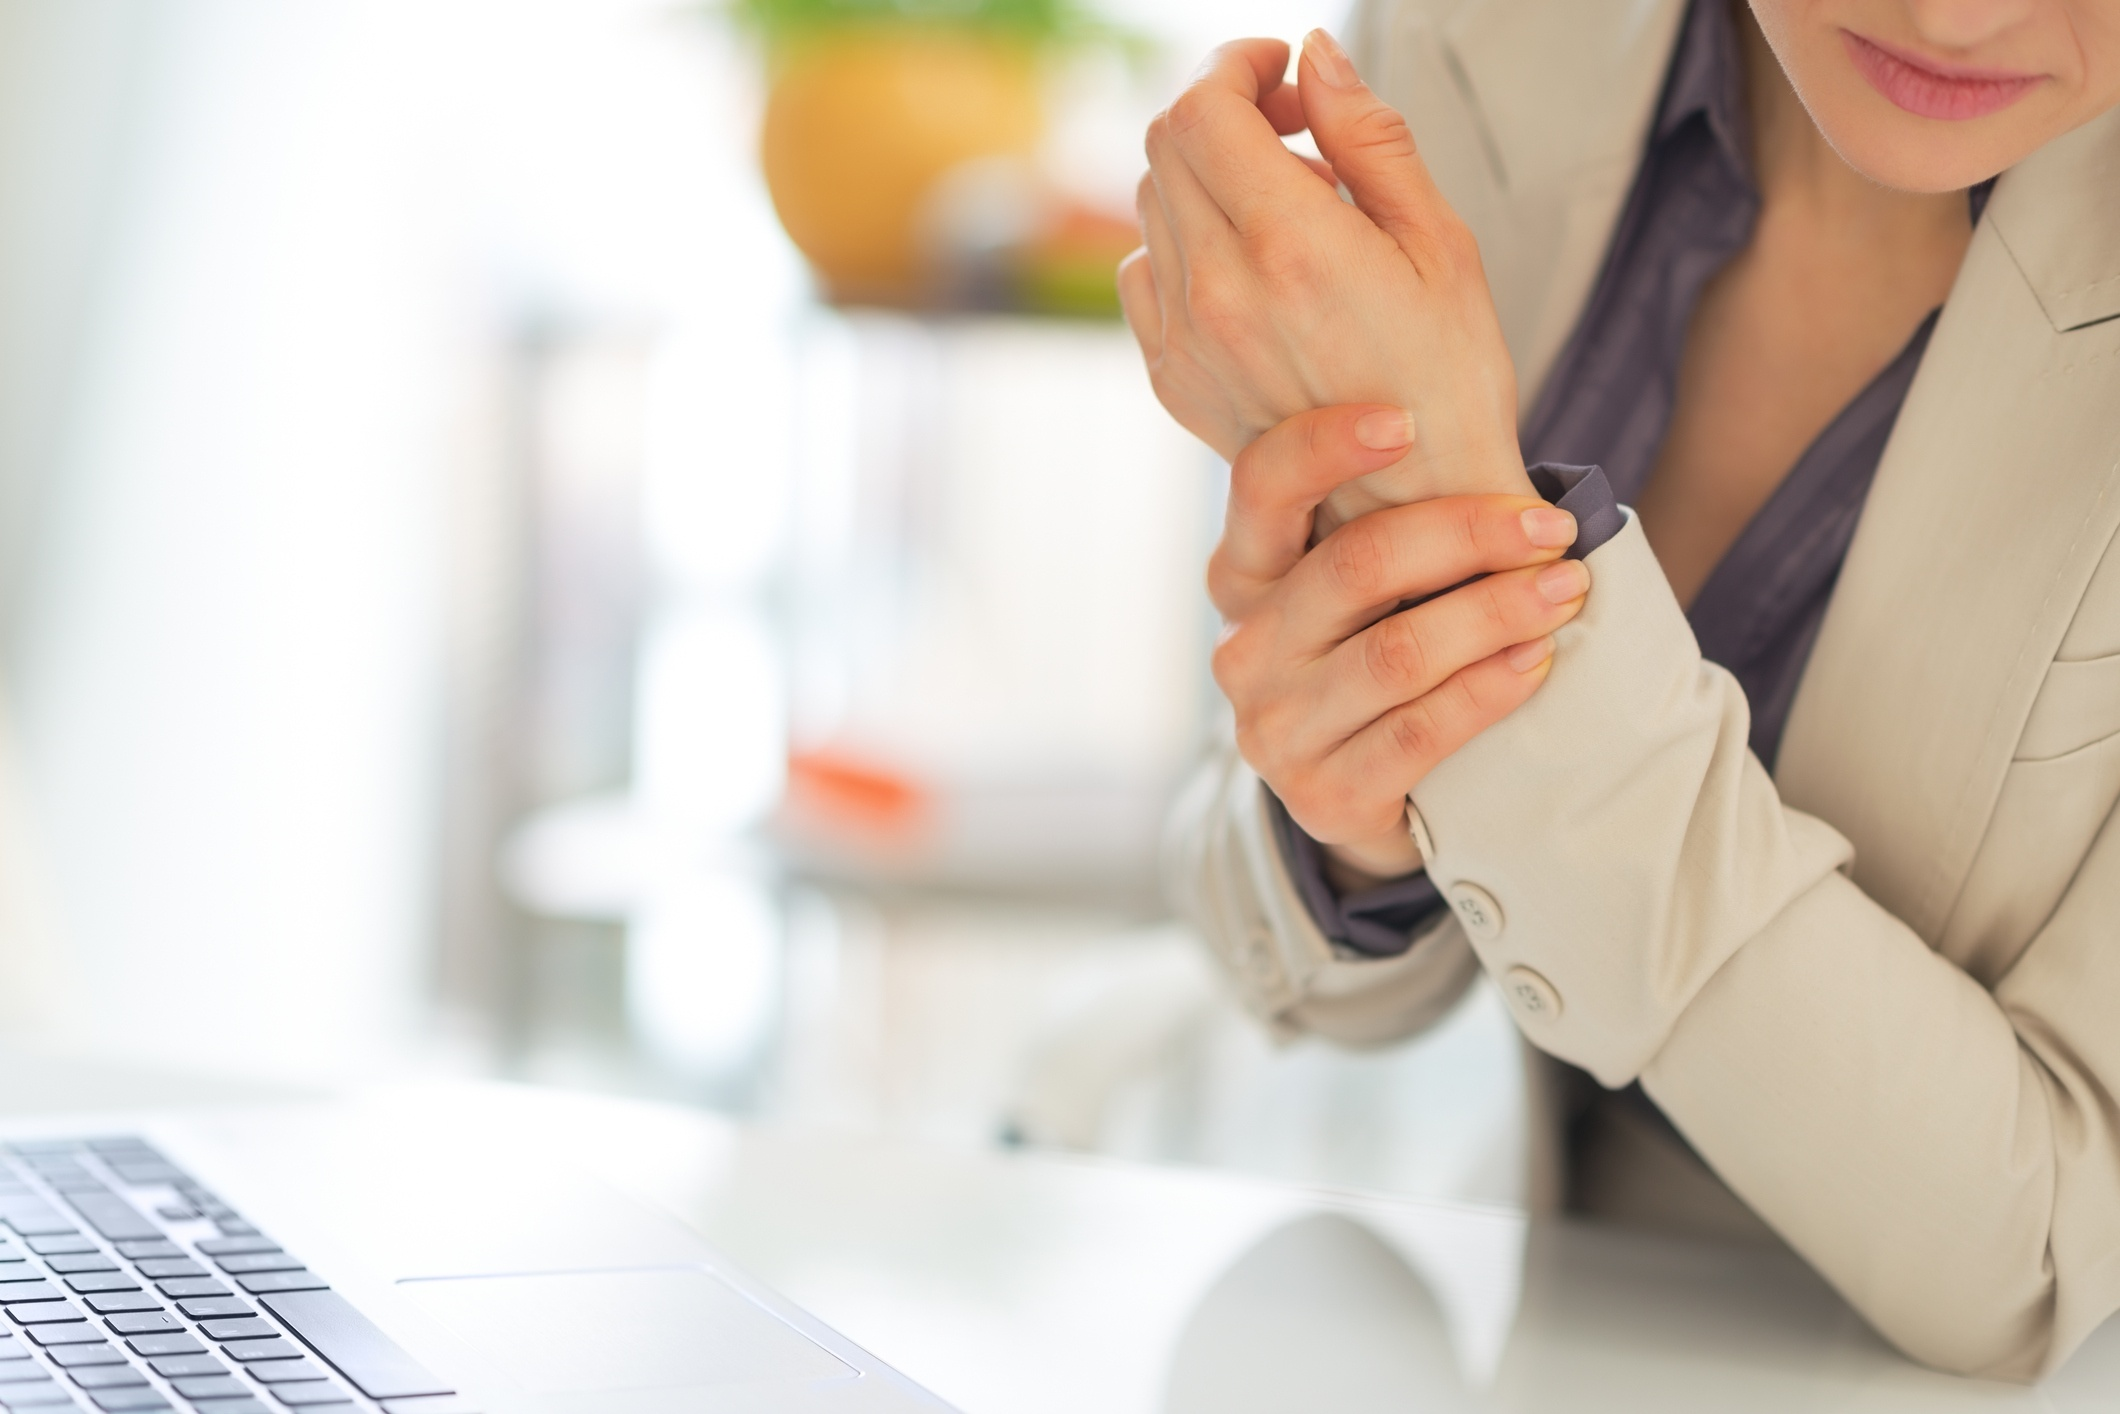 closeup-on-business-woman-with-wrist-pain-492150571_2121x1416